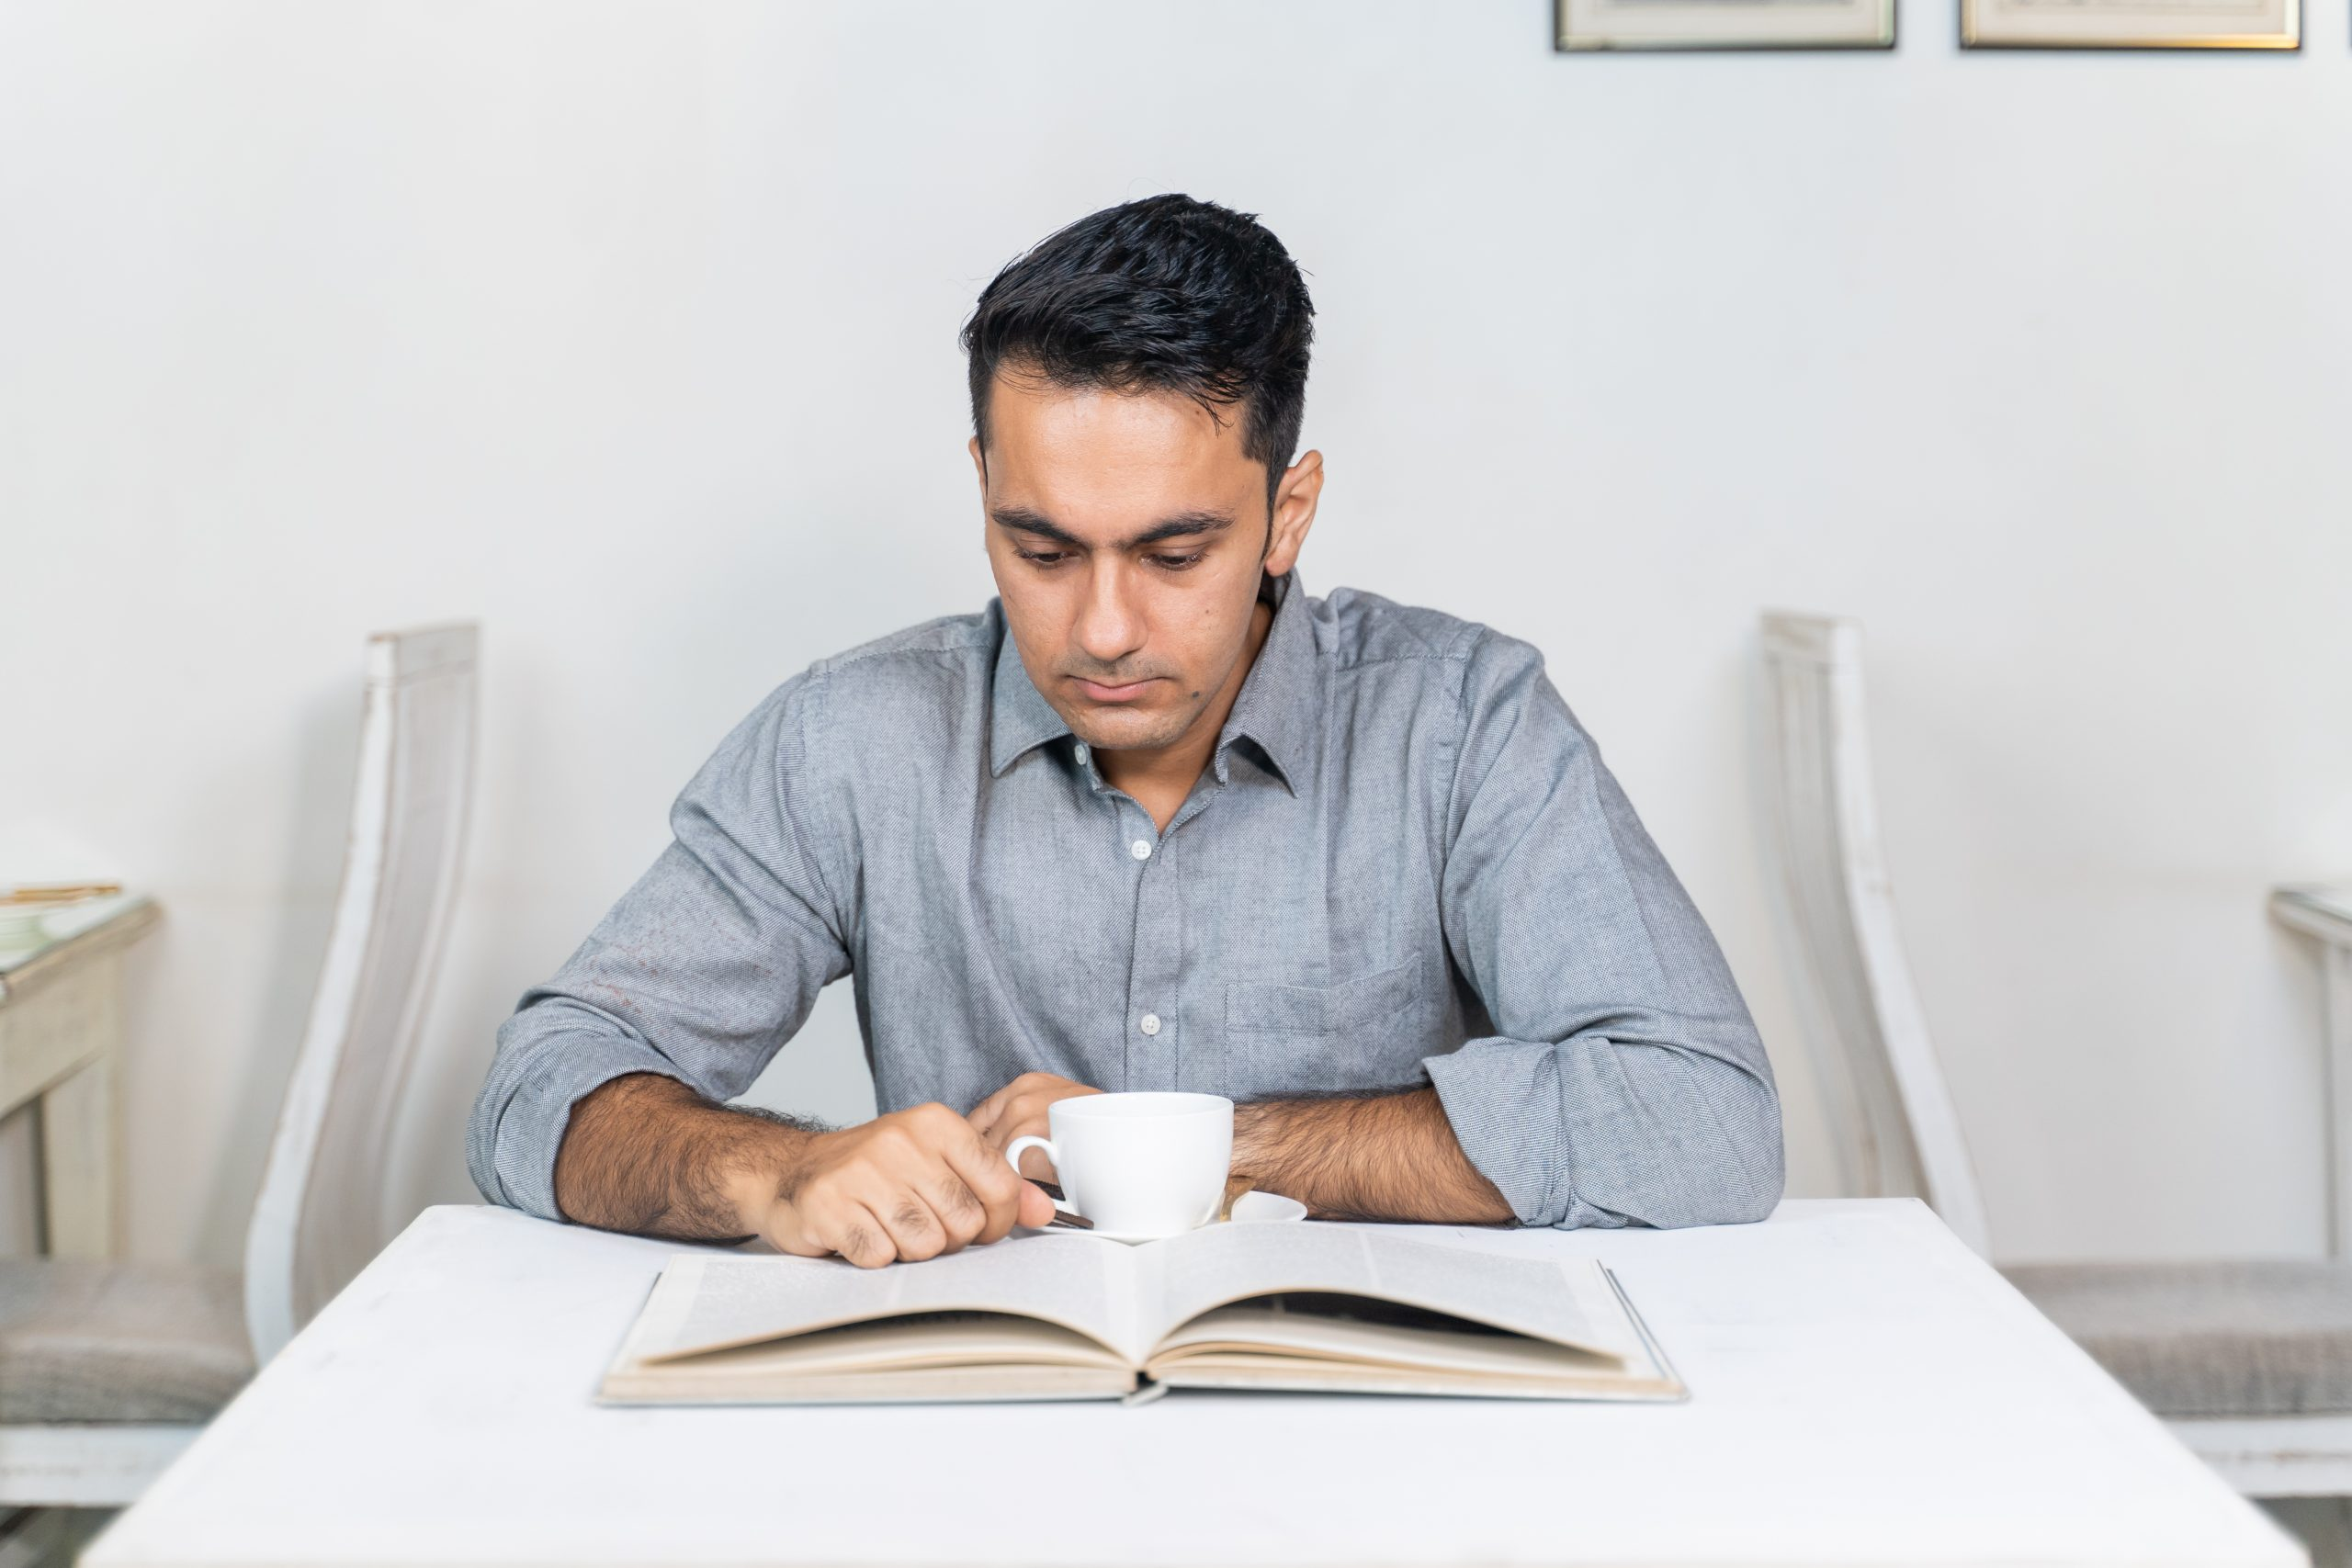 Handsome young man reading book in the cafe